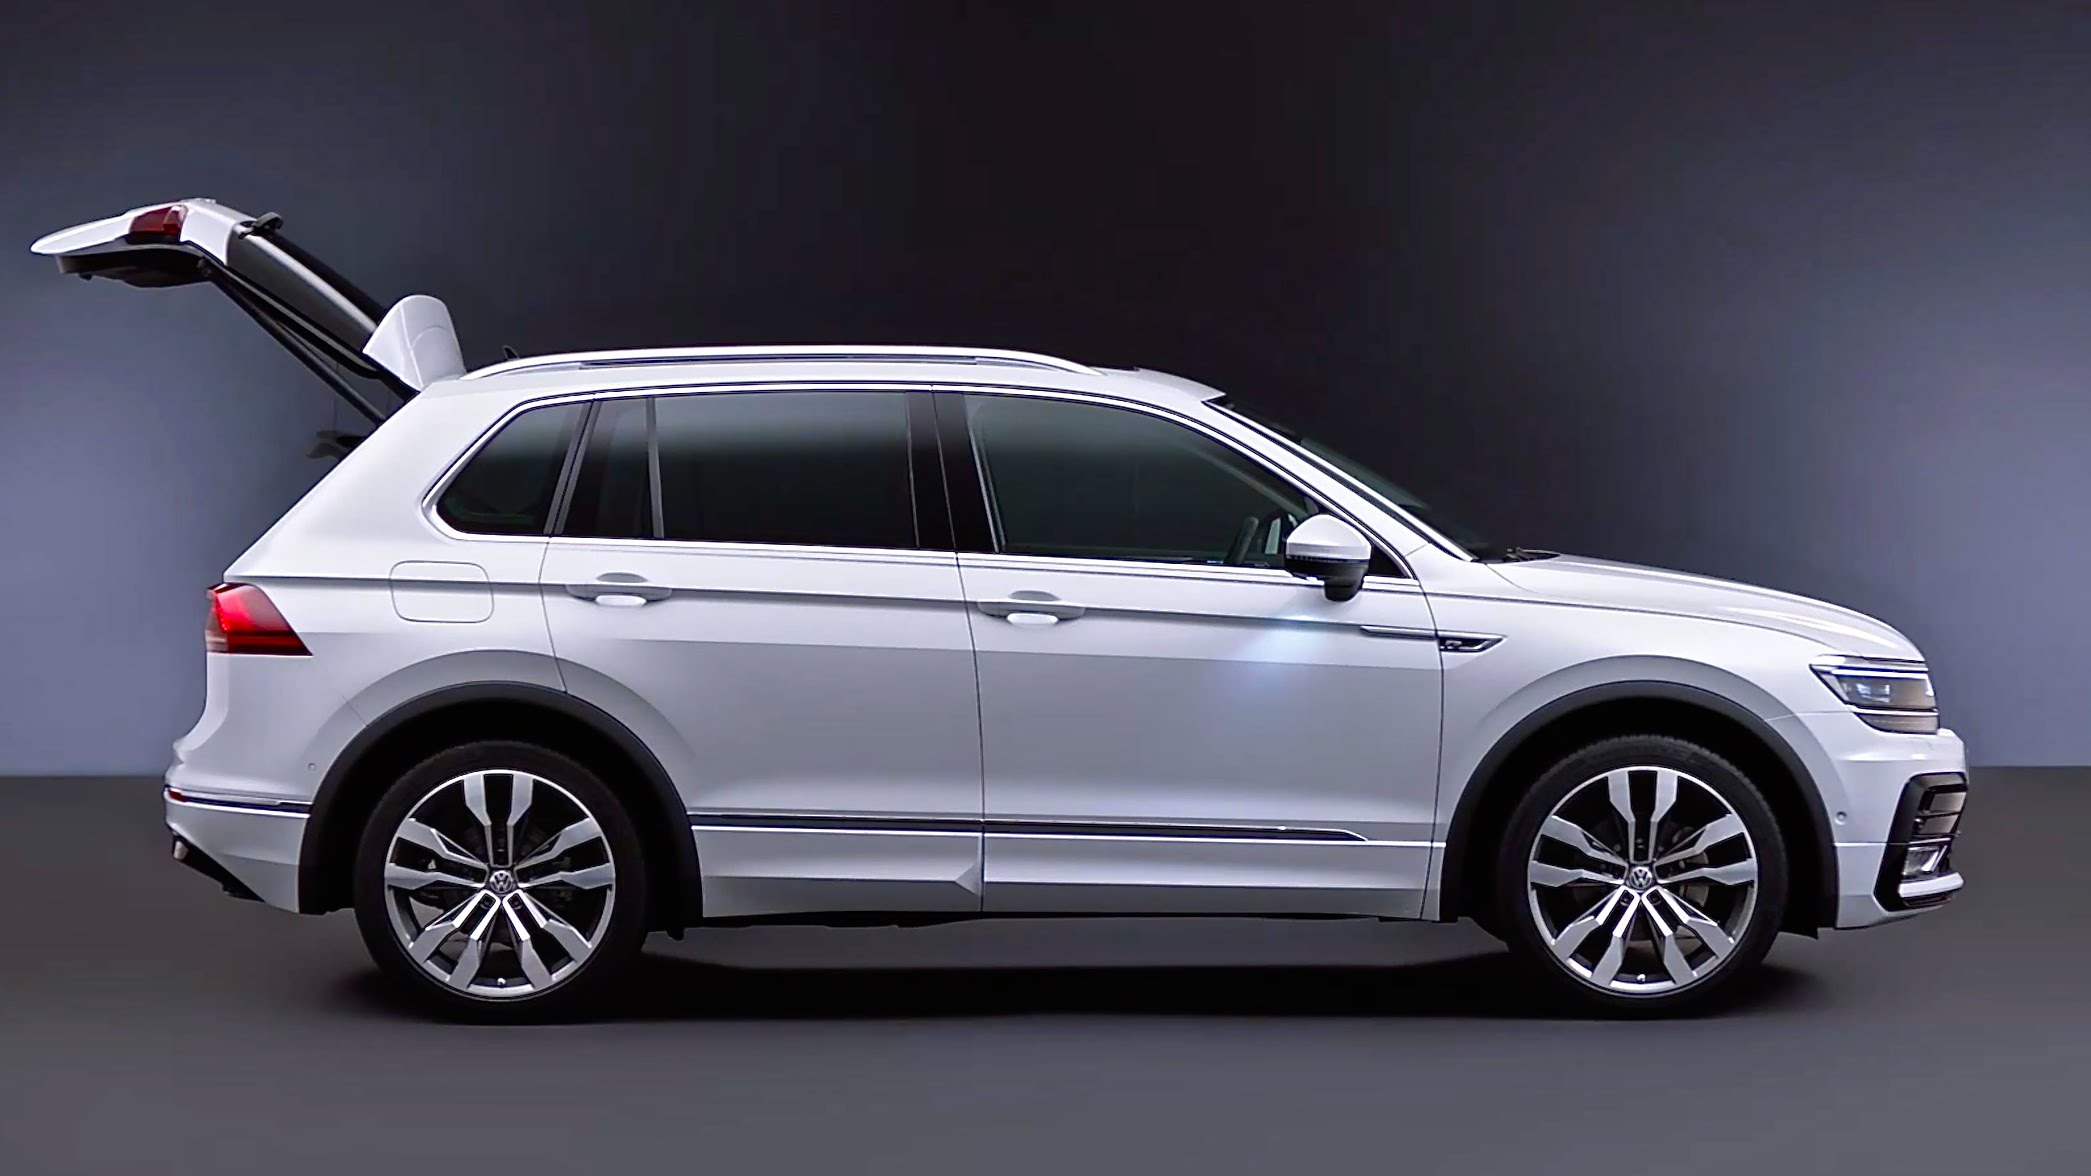 Volkswagen Tiguan 2 widescreen wallpapers